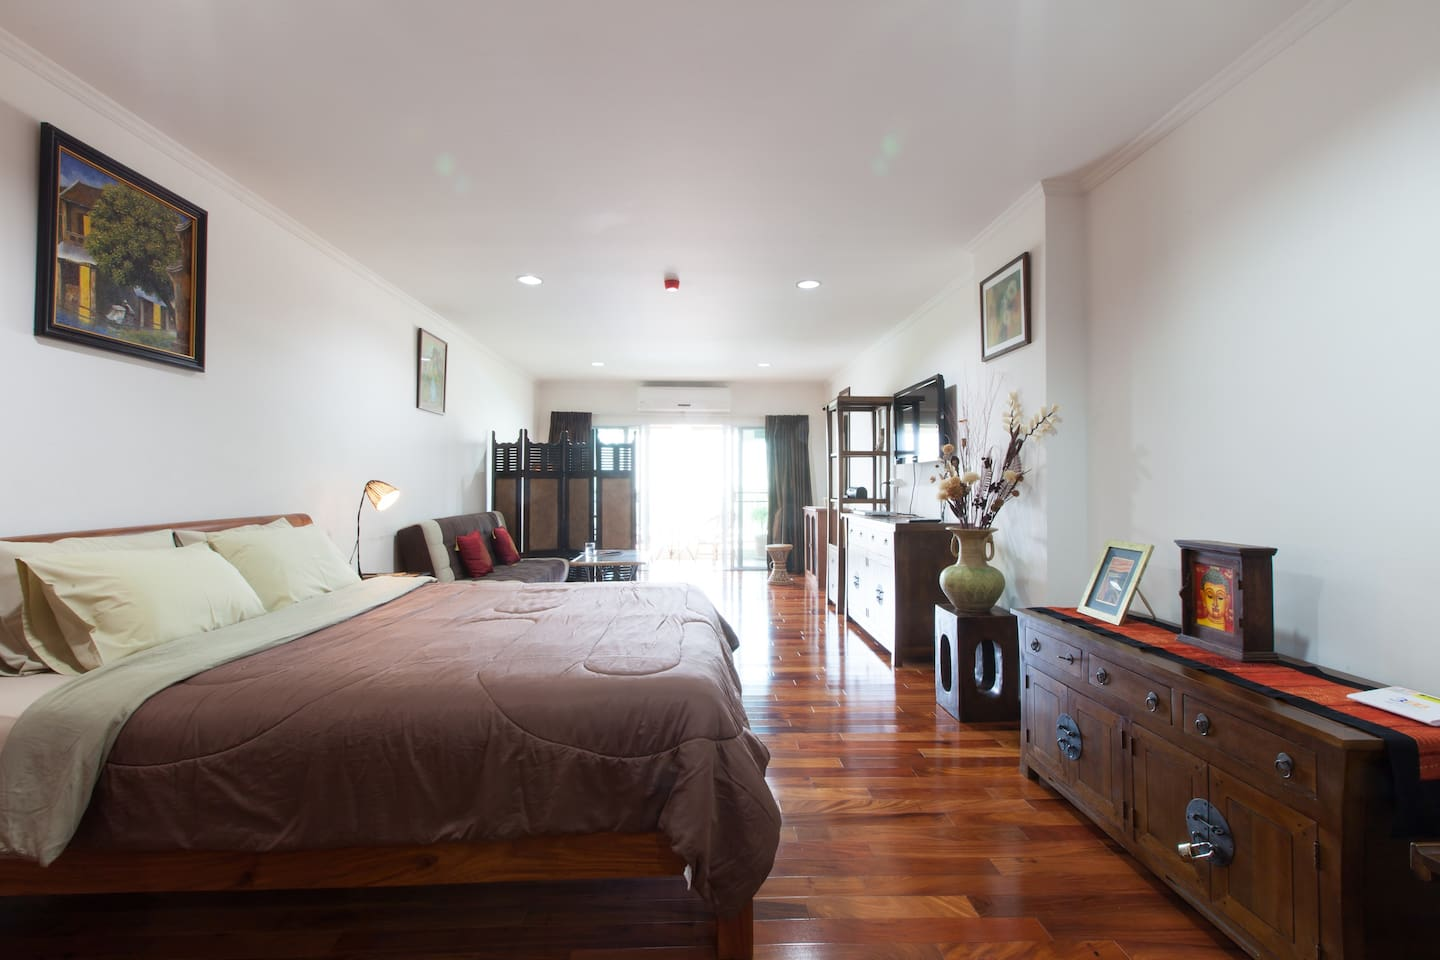 Spacious studio apartment with afternoon light from setting sun